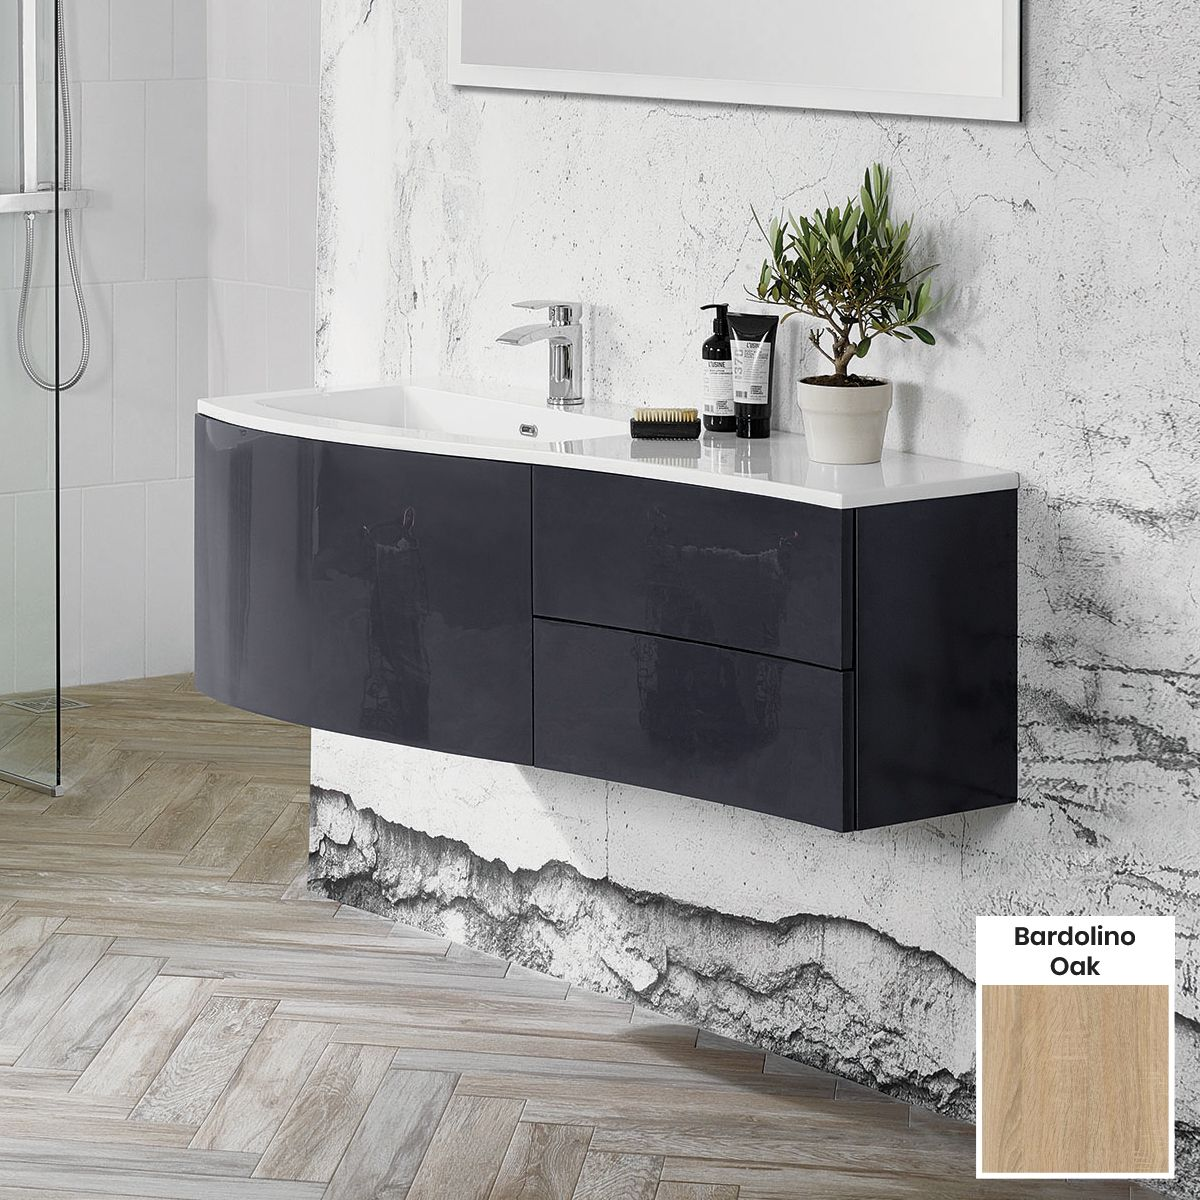 Elation Kiyo Bardolino Oak Vanity Unit 1200mm Left Handed